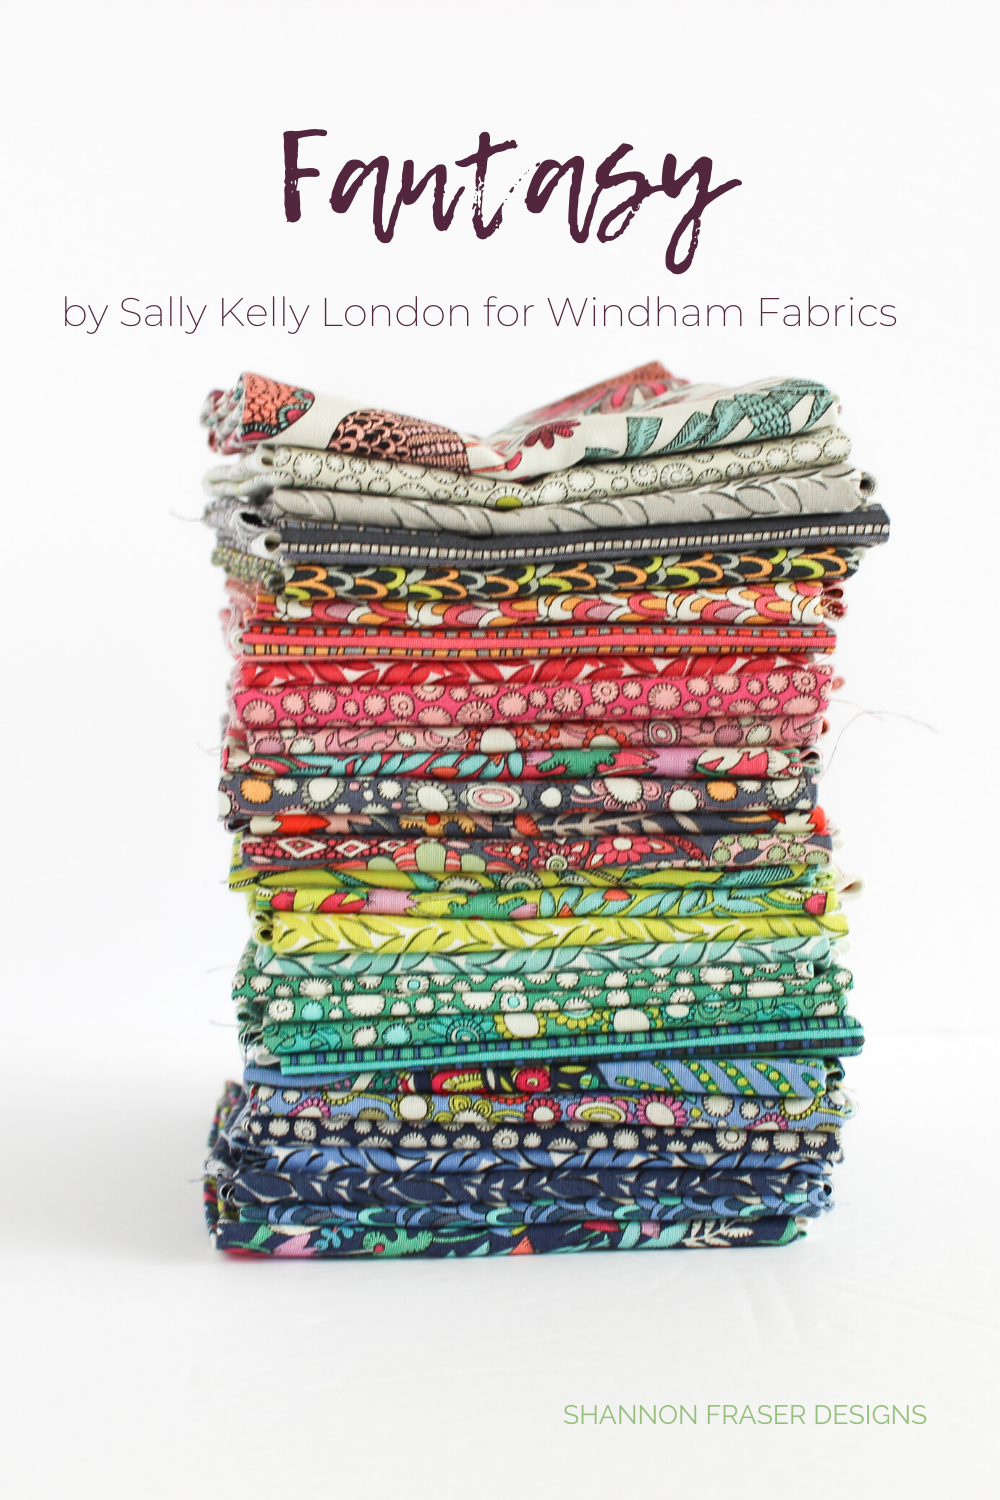 Fat quarter stack of Fantasy fabric collection designed by Sally Kelly London for Windham Fabrics | Modern Aztec quilted table runner | Shannon Fraser Designs #fatquarterbundle